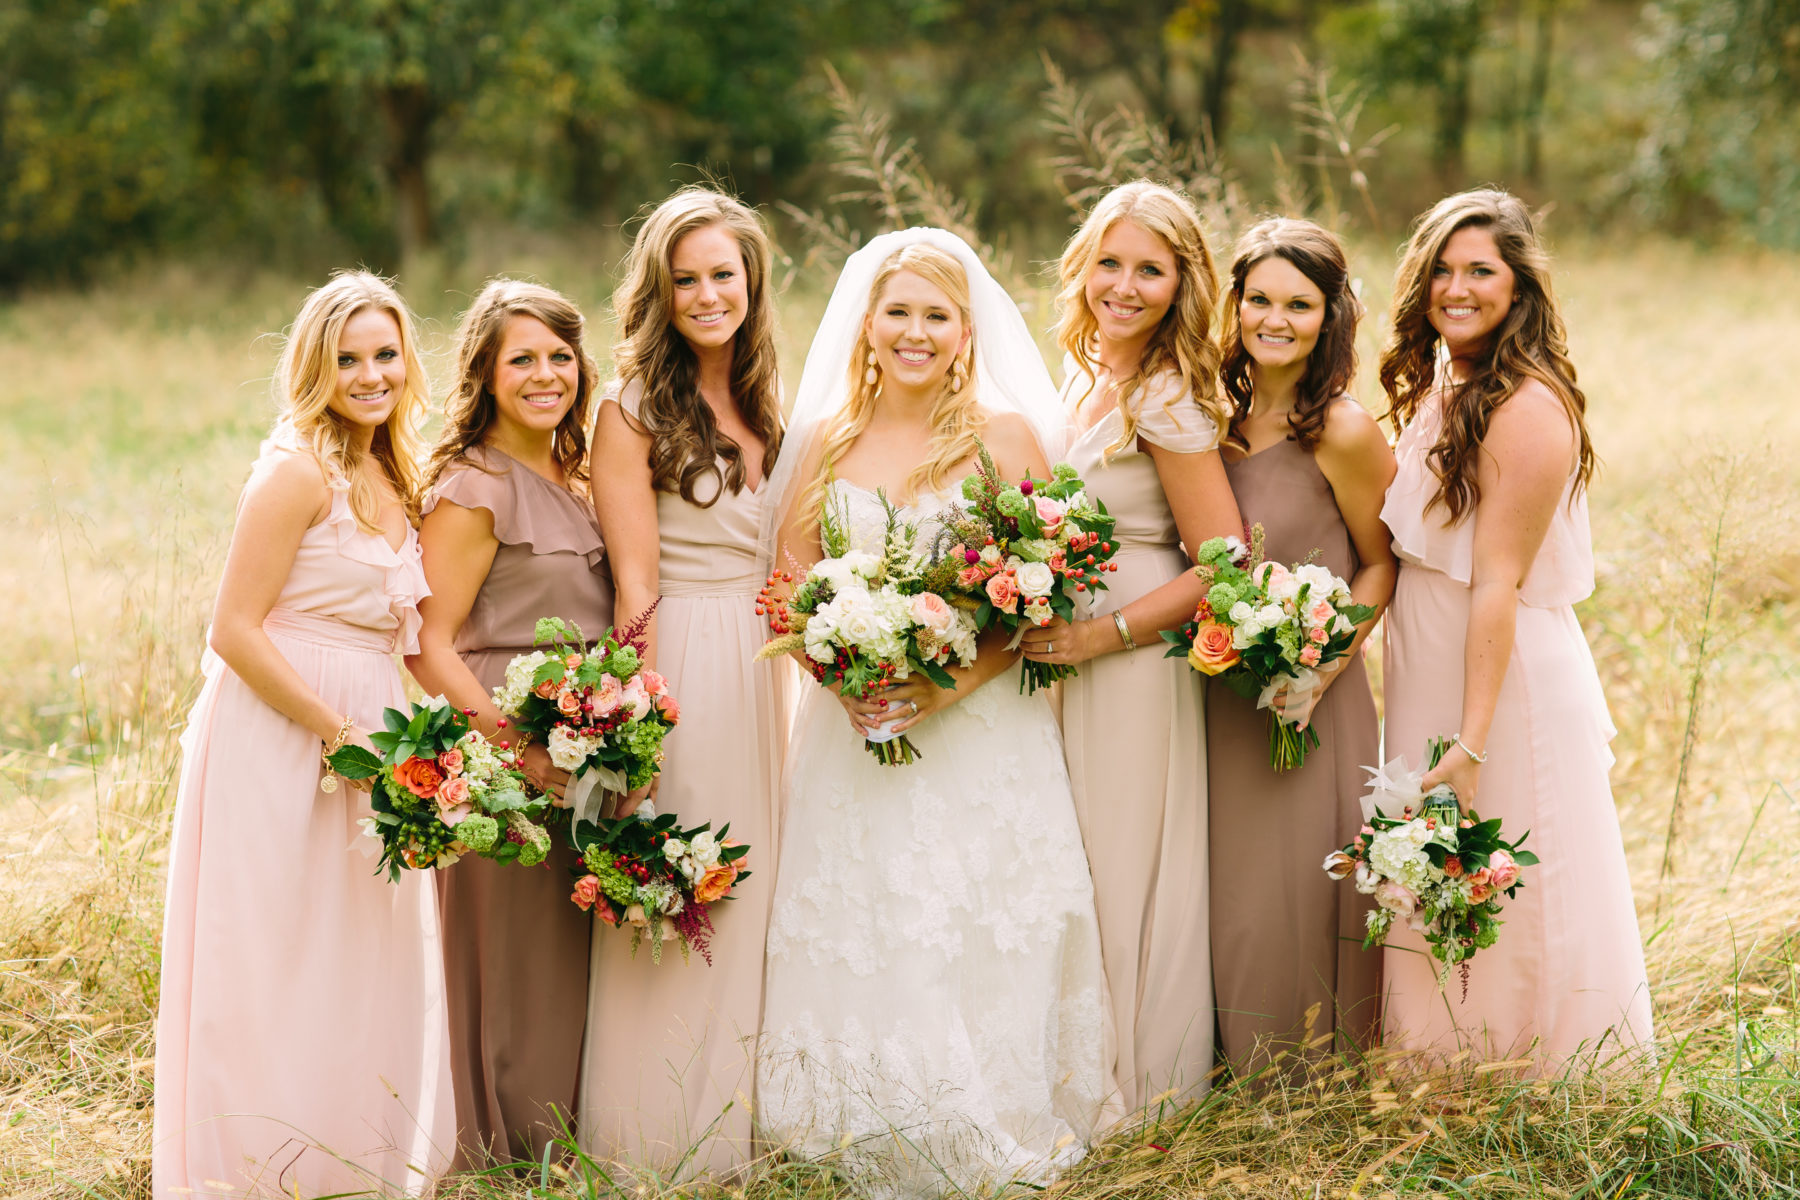 bellabridesmaids